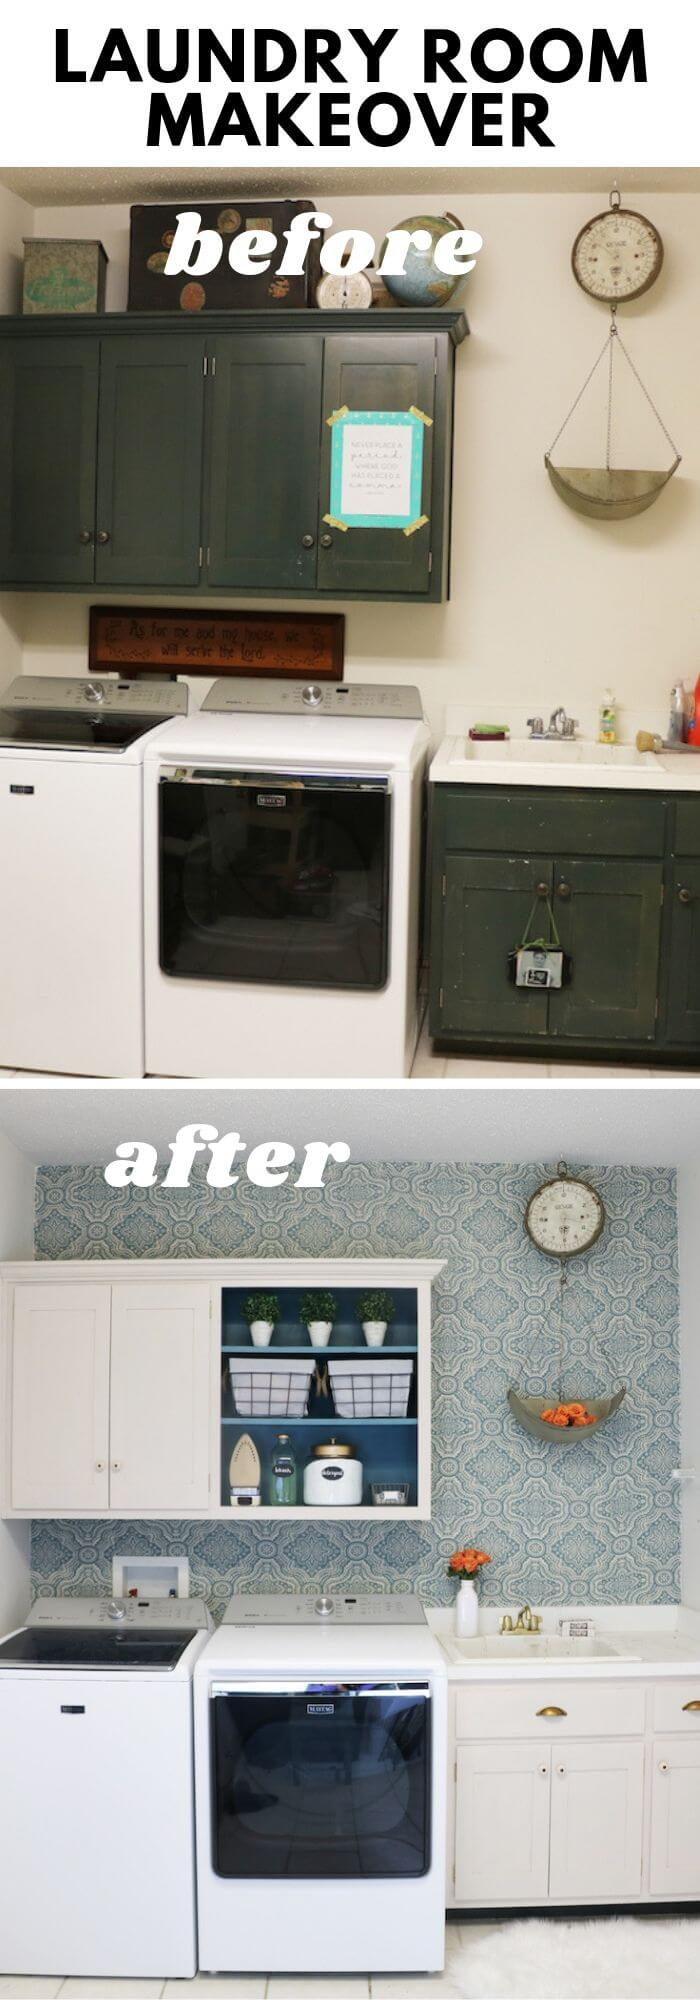 The Linen cabinets with fabric wall